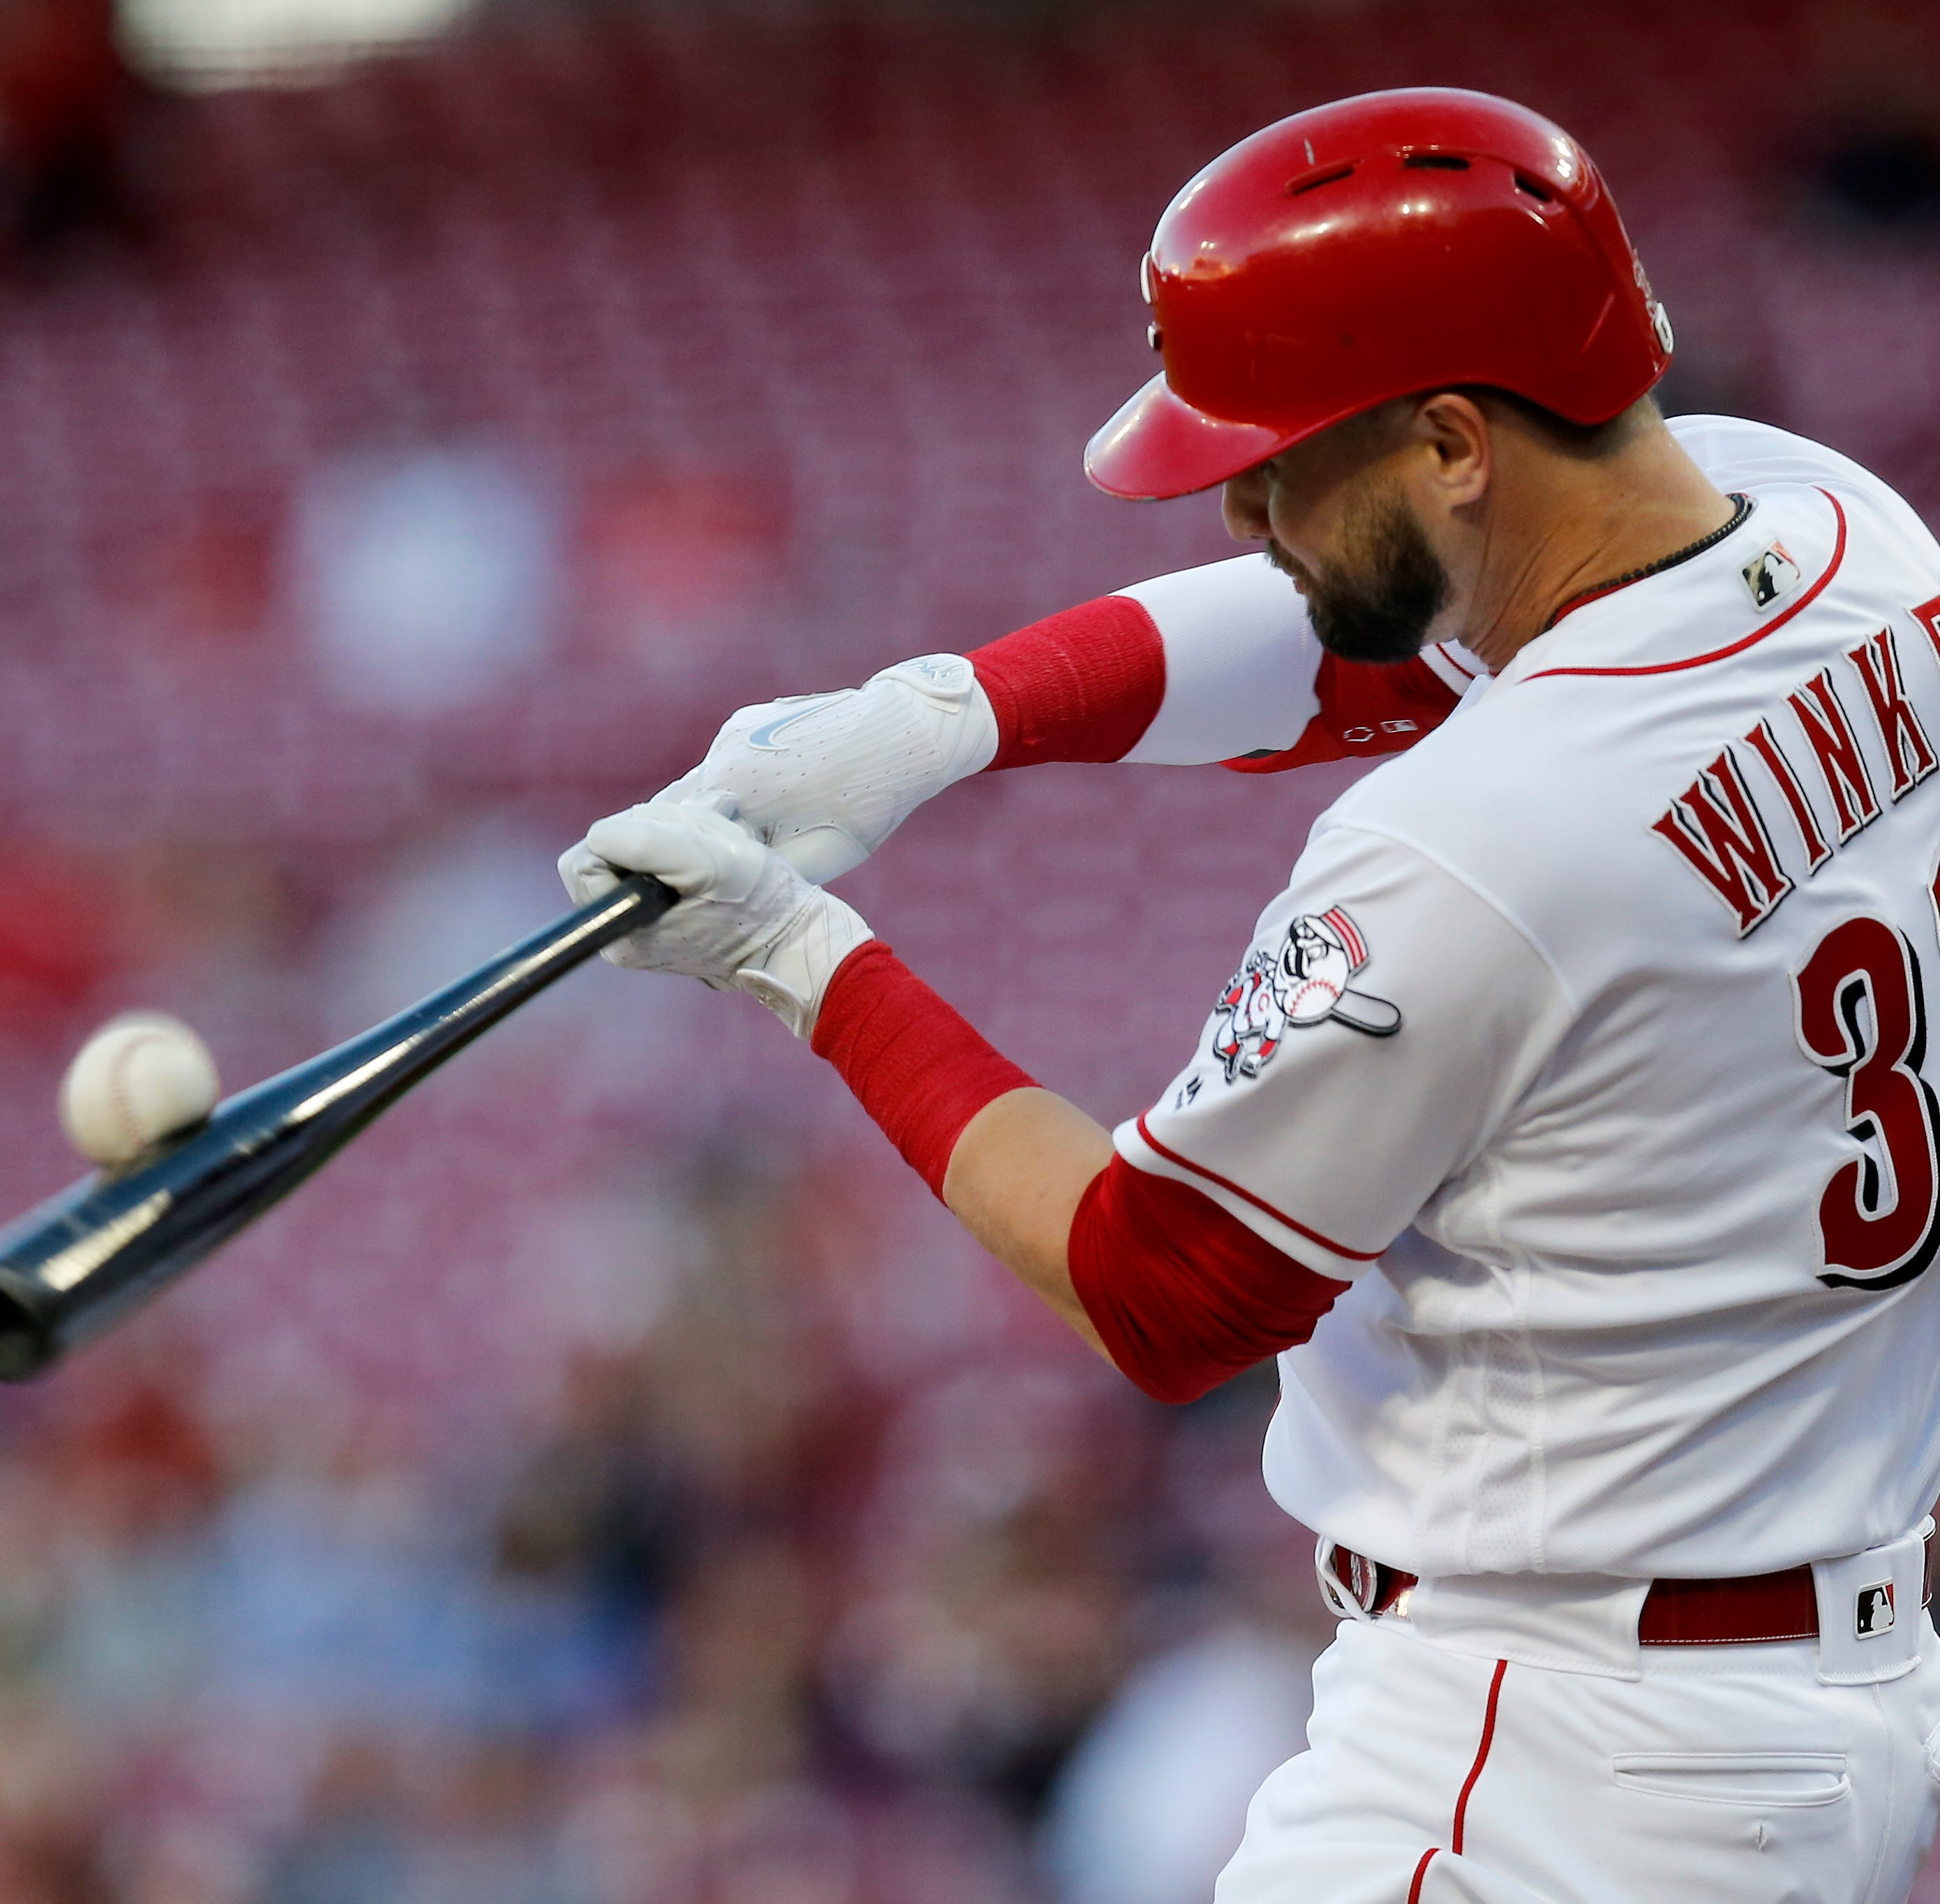 Cincinnati Reds notebook: Jesse Winker breaks out, Hunter Greene surgery, Joey Votto's HBP